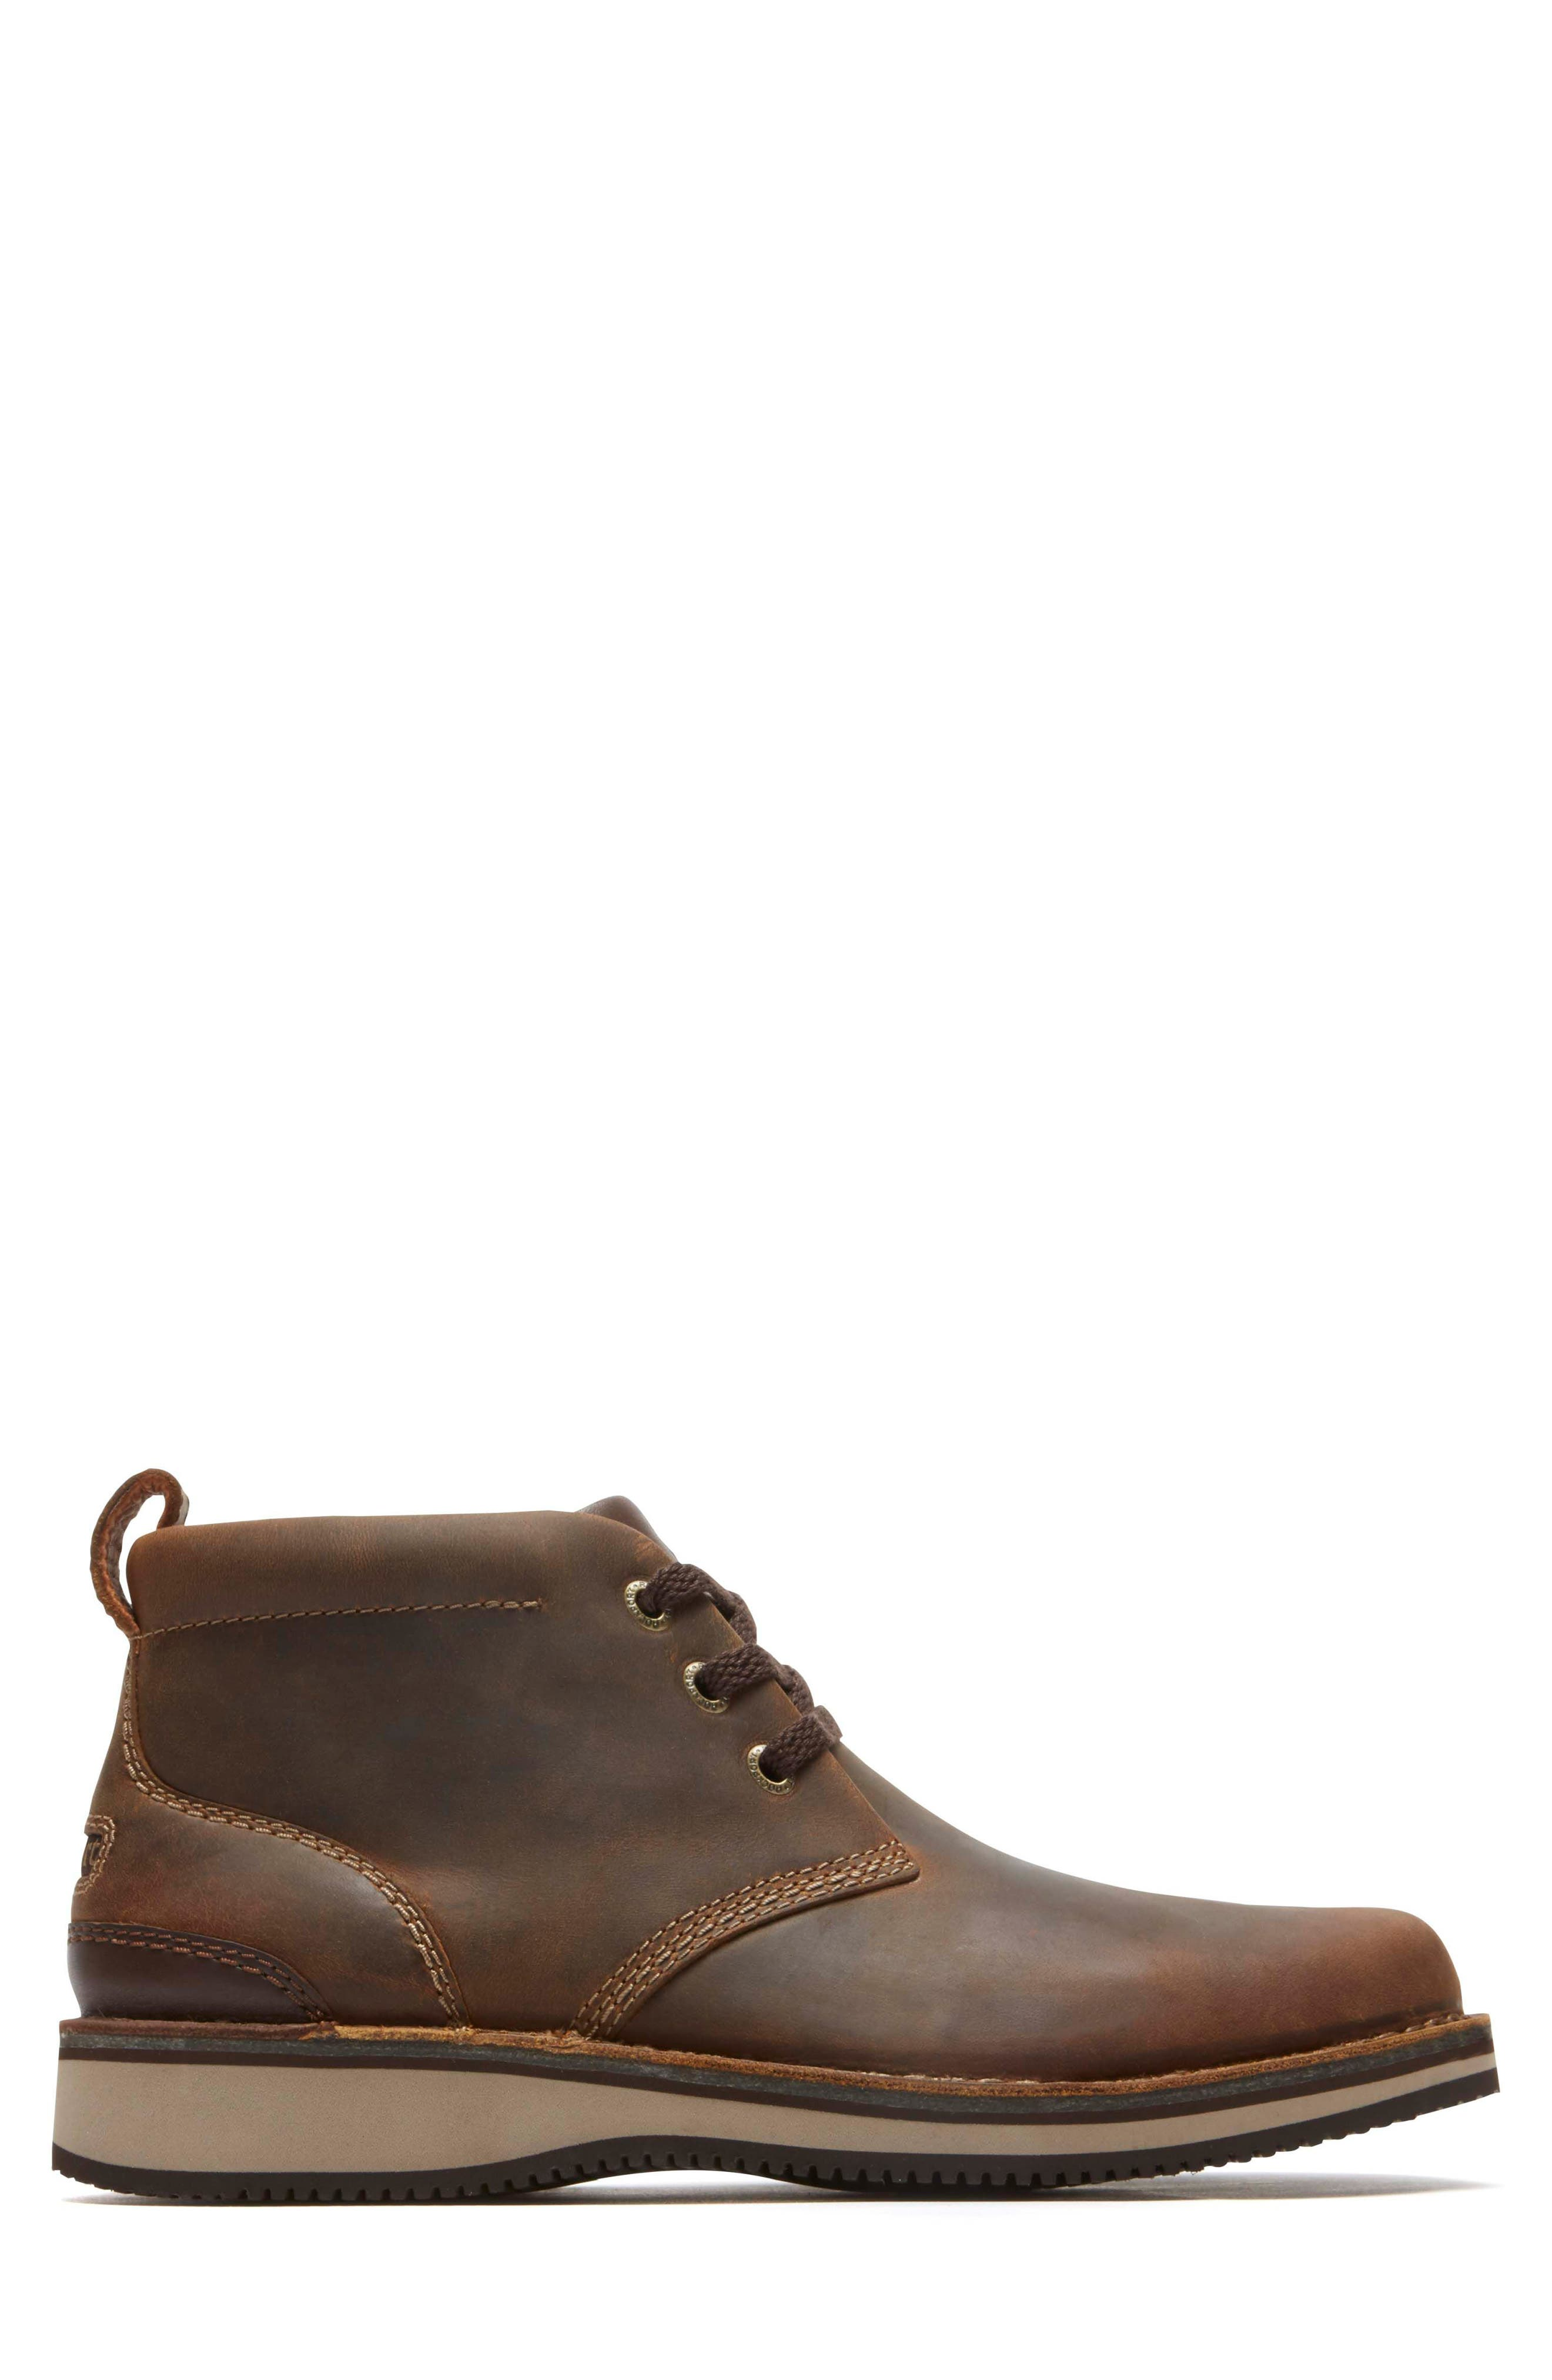 'Prestige Point' Chukka Boot,                             Alternate thumbnail 3, color,                             Beeswax Leather